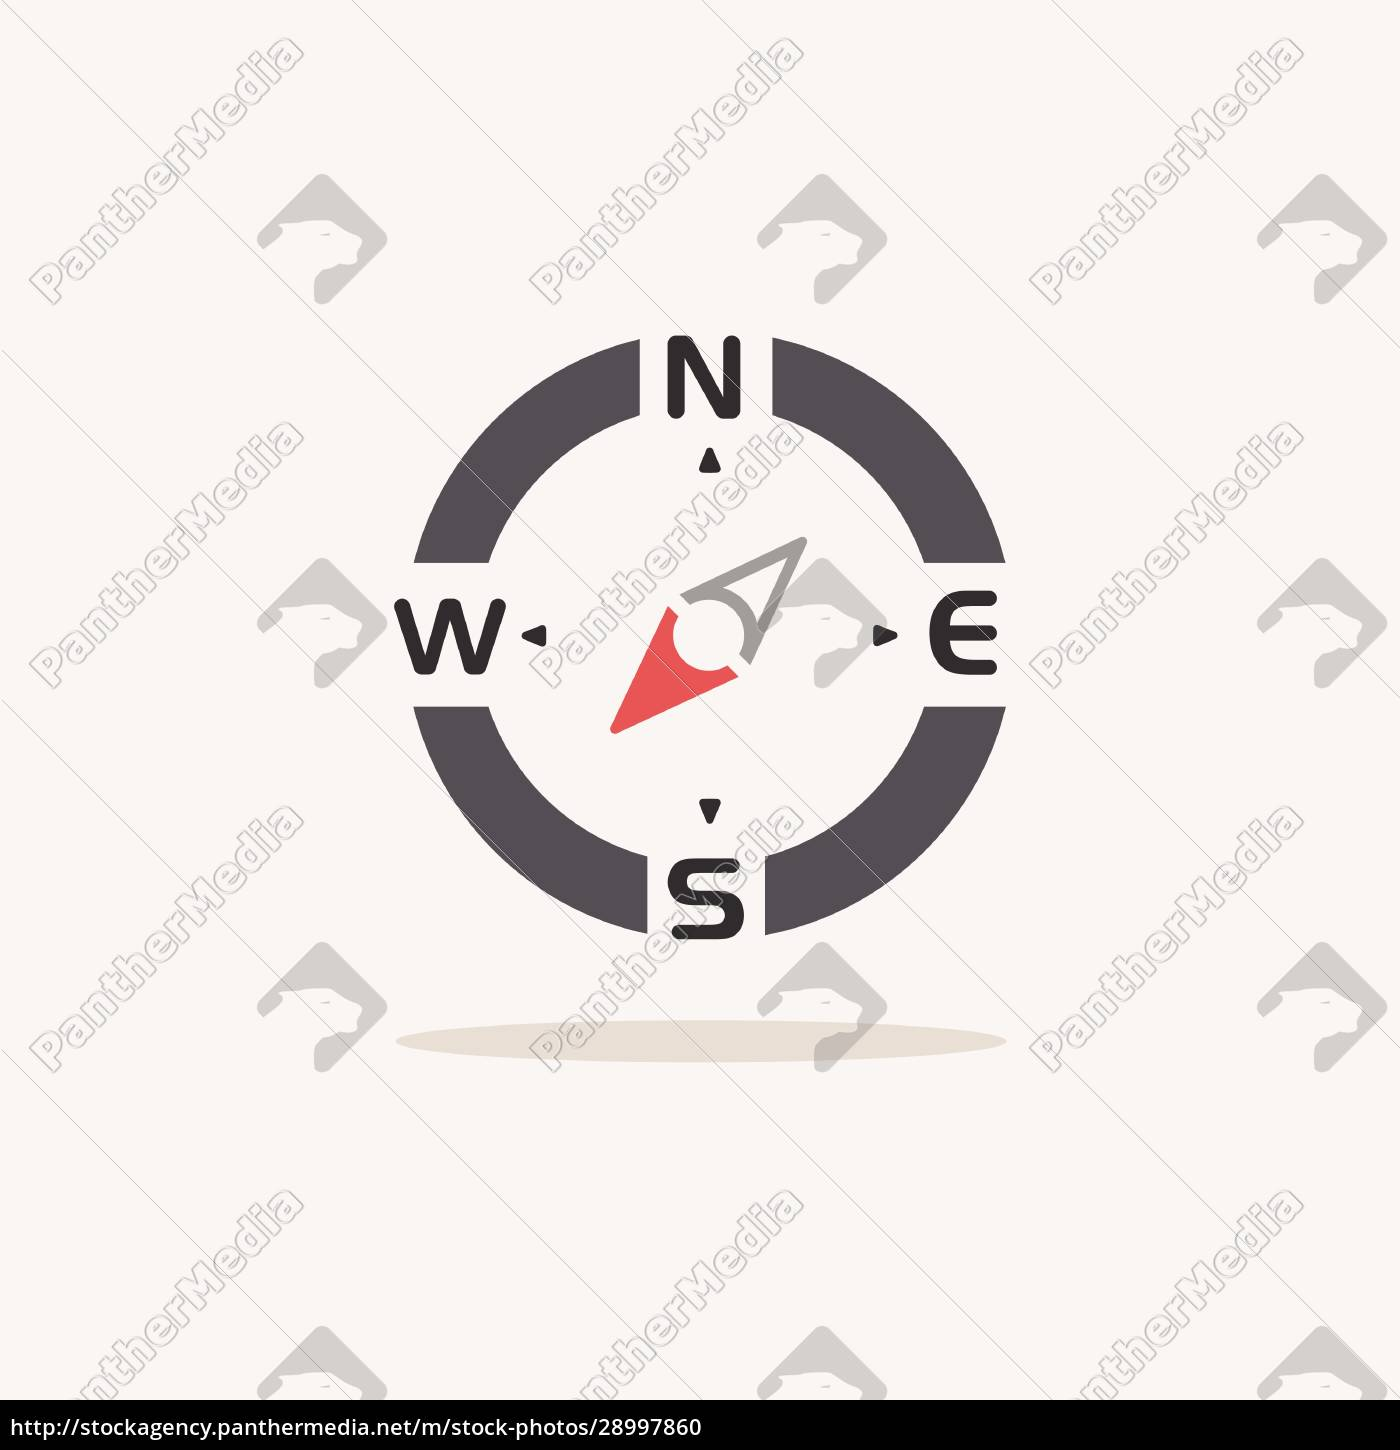 compass., south, west, direction., color, icon - 28997860